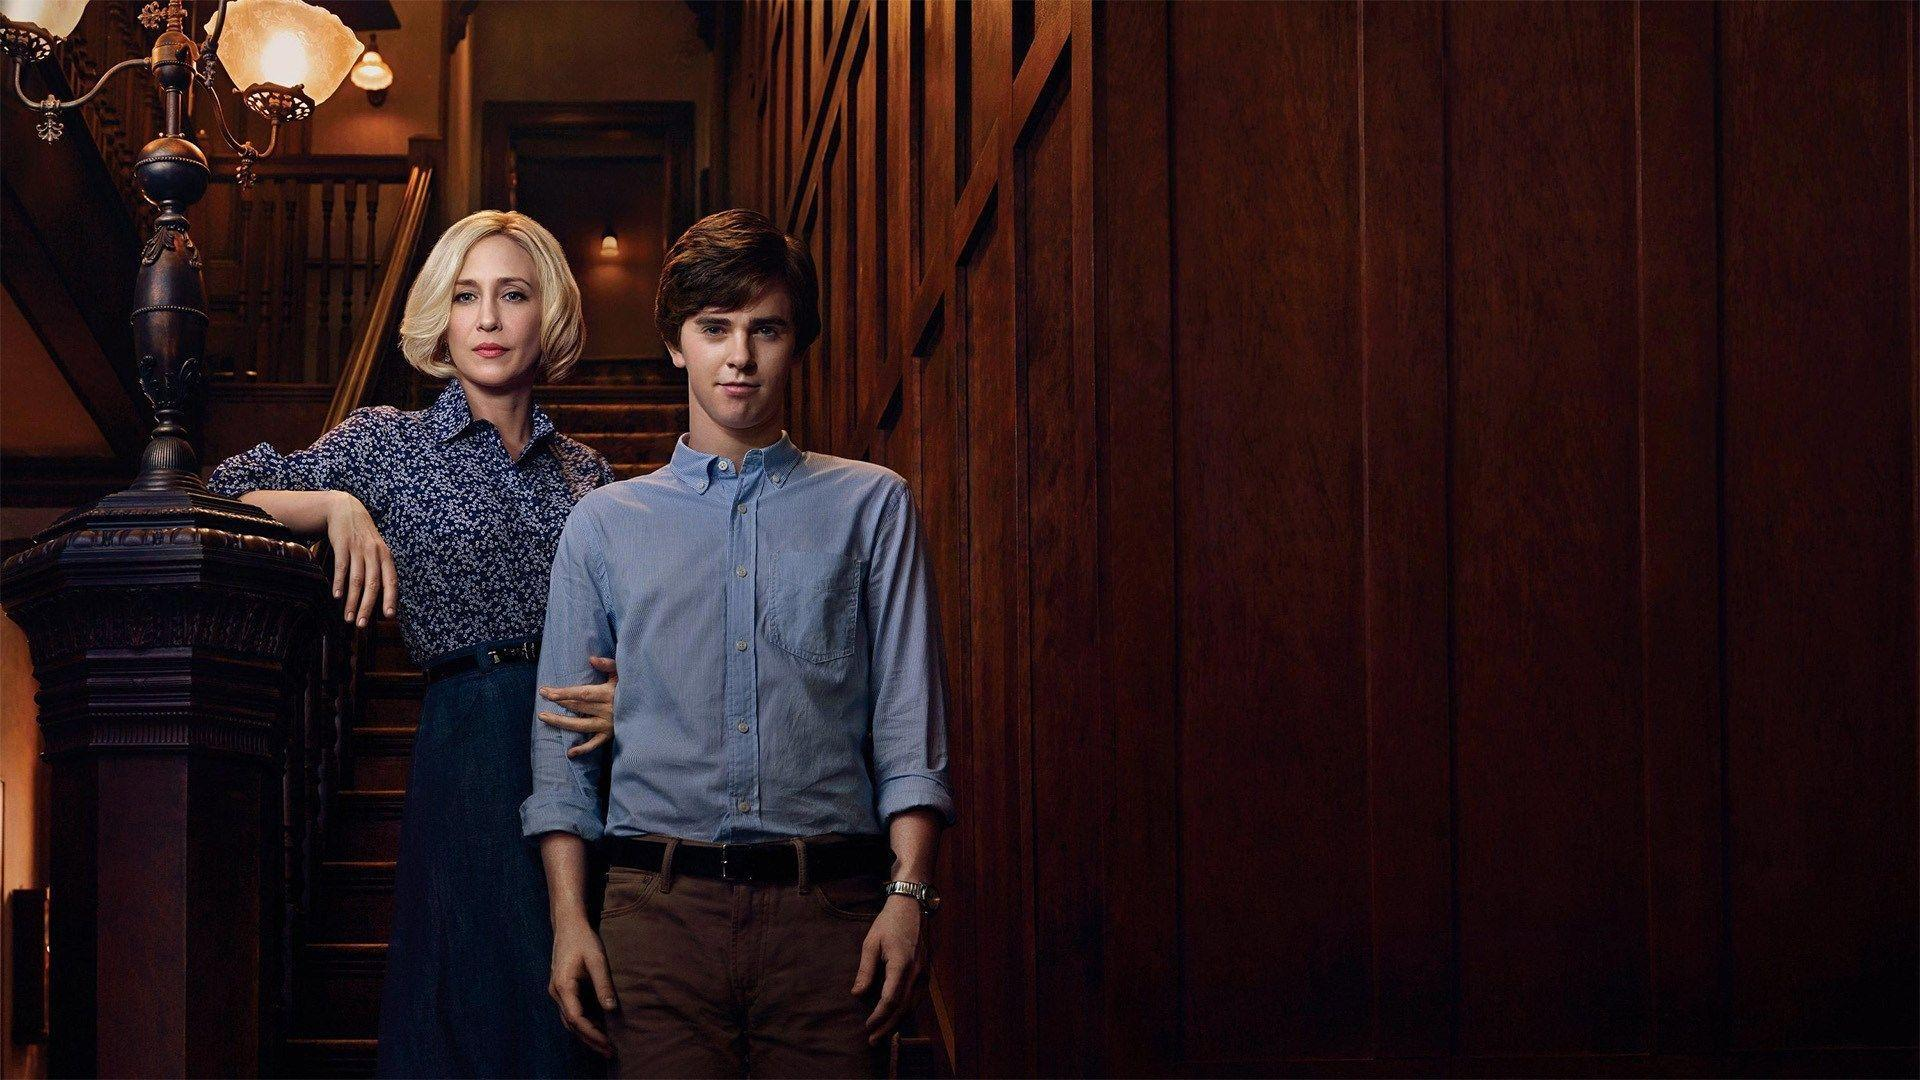 1920x1080 High Resolution Wallpapers = bates motel